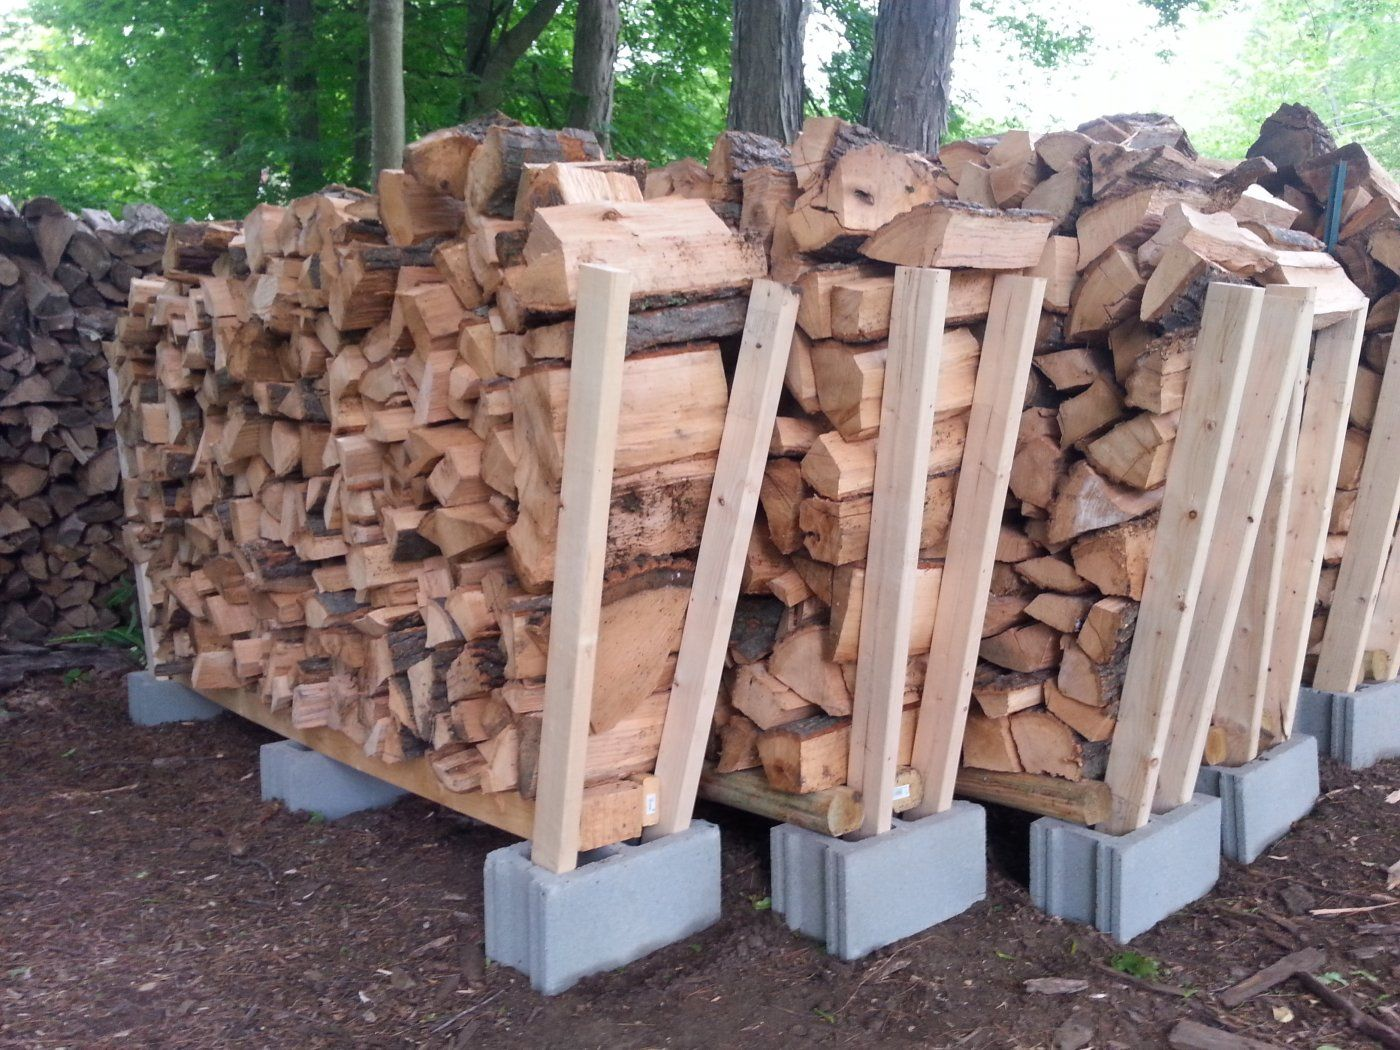 Best Way To Put Wood On Pallets Outdoor Firewood Rack